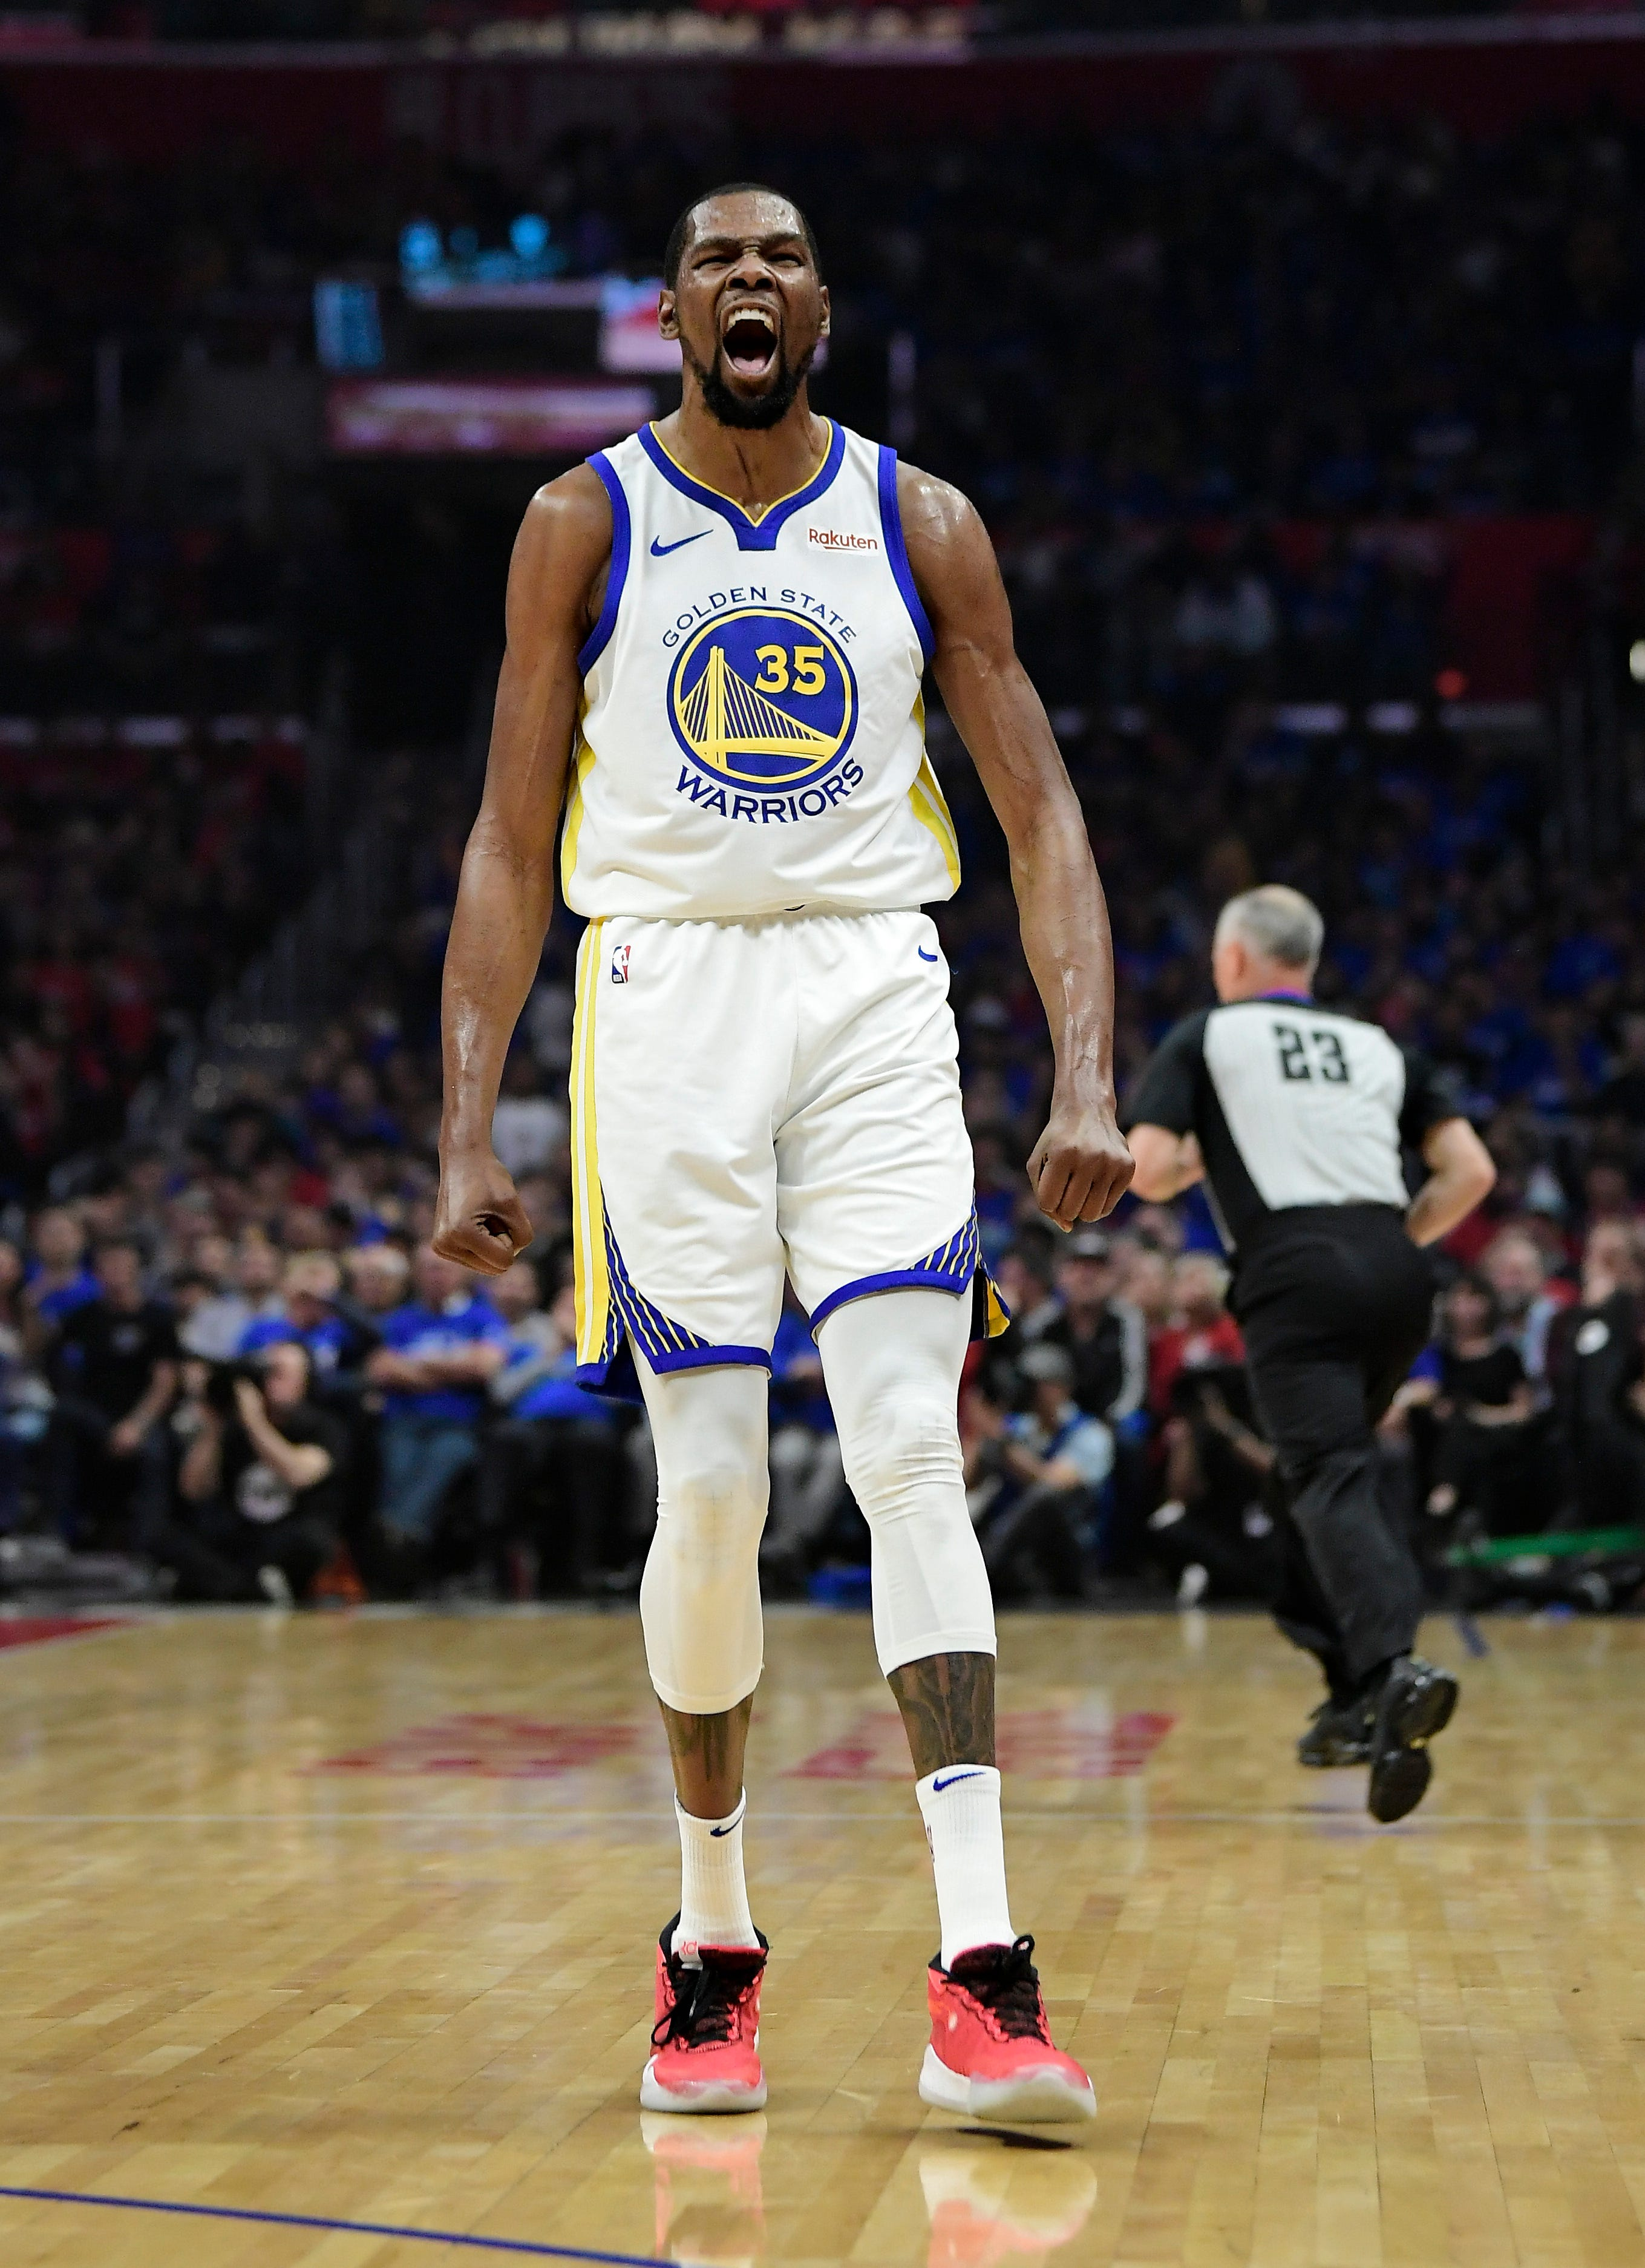 Opinion: Warriors ensure no comeback this time with rout of Clippers in Game 3